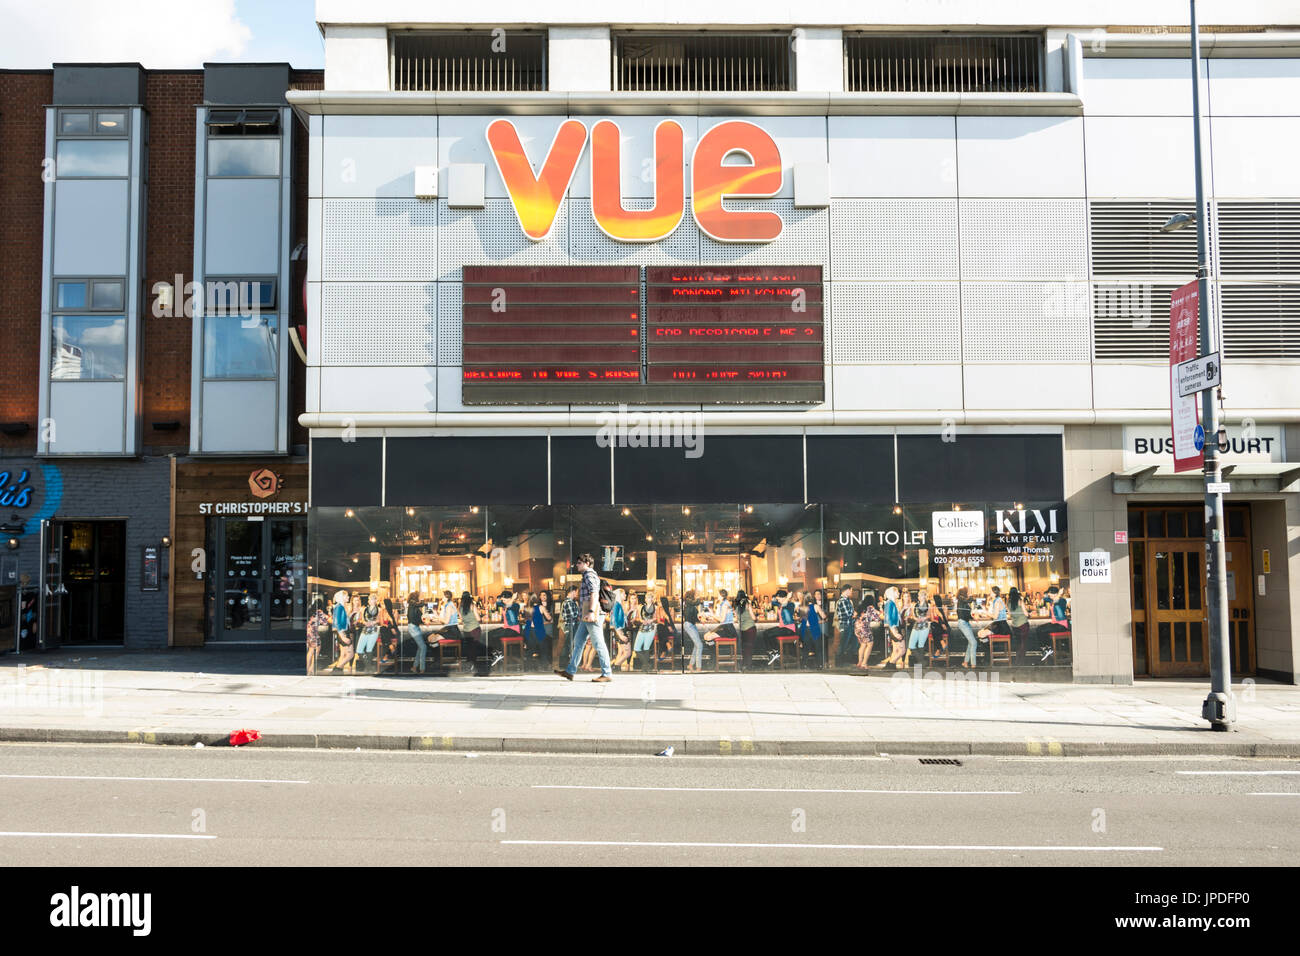 Exterior of the Vue cinema complex in Shepherds Bush, London, UK - Stock Image